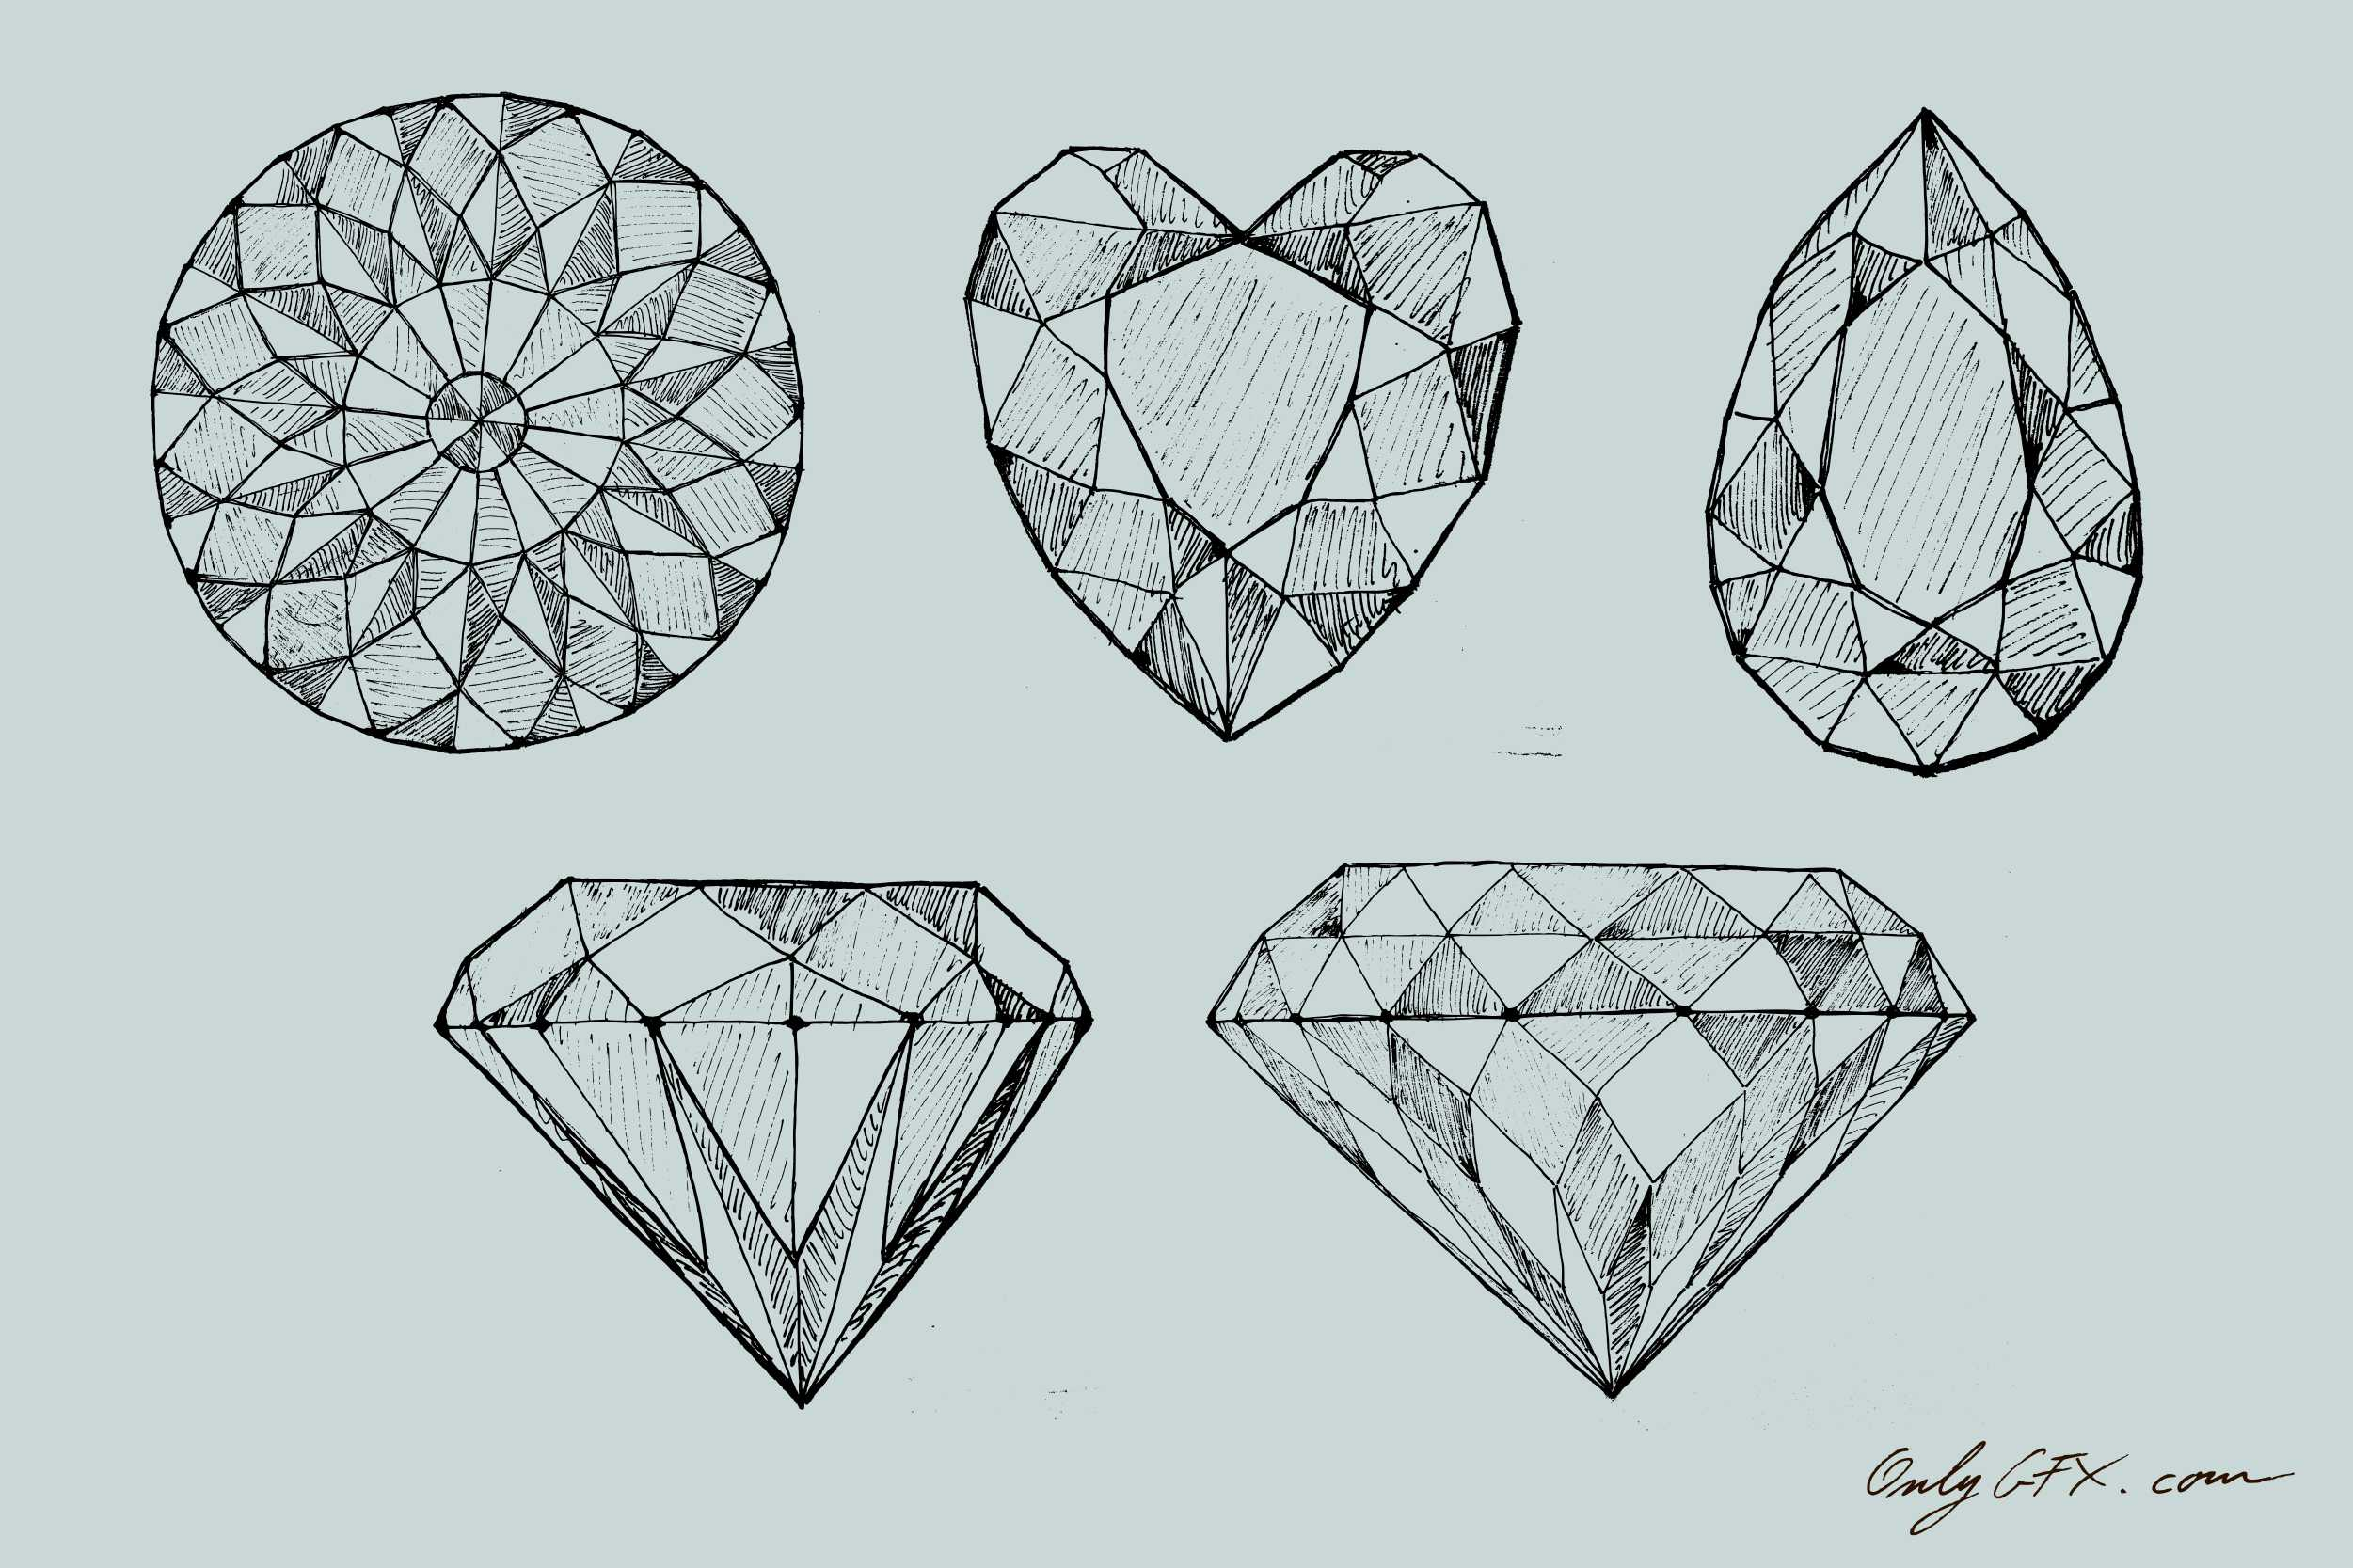 diamond drawing vector eps svg png transparent onlygfx com diamond drawing vector eps svg png